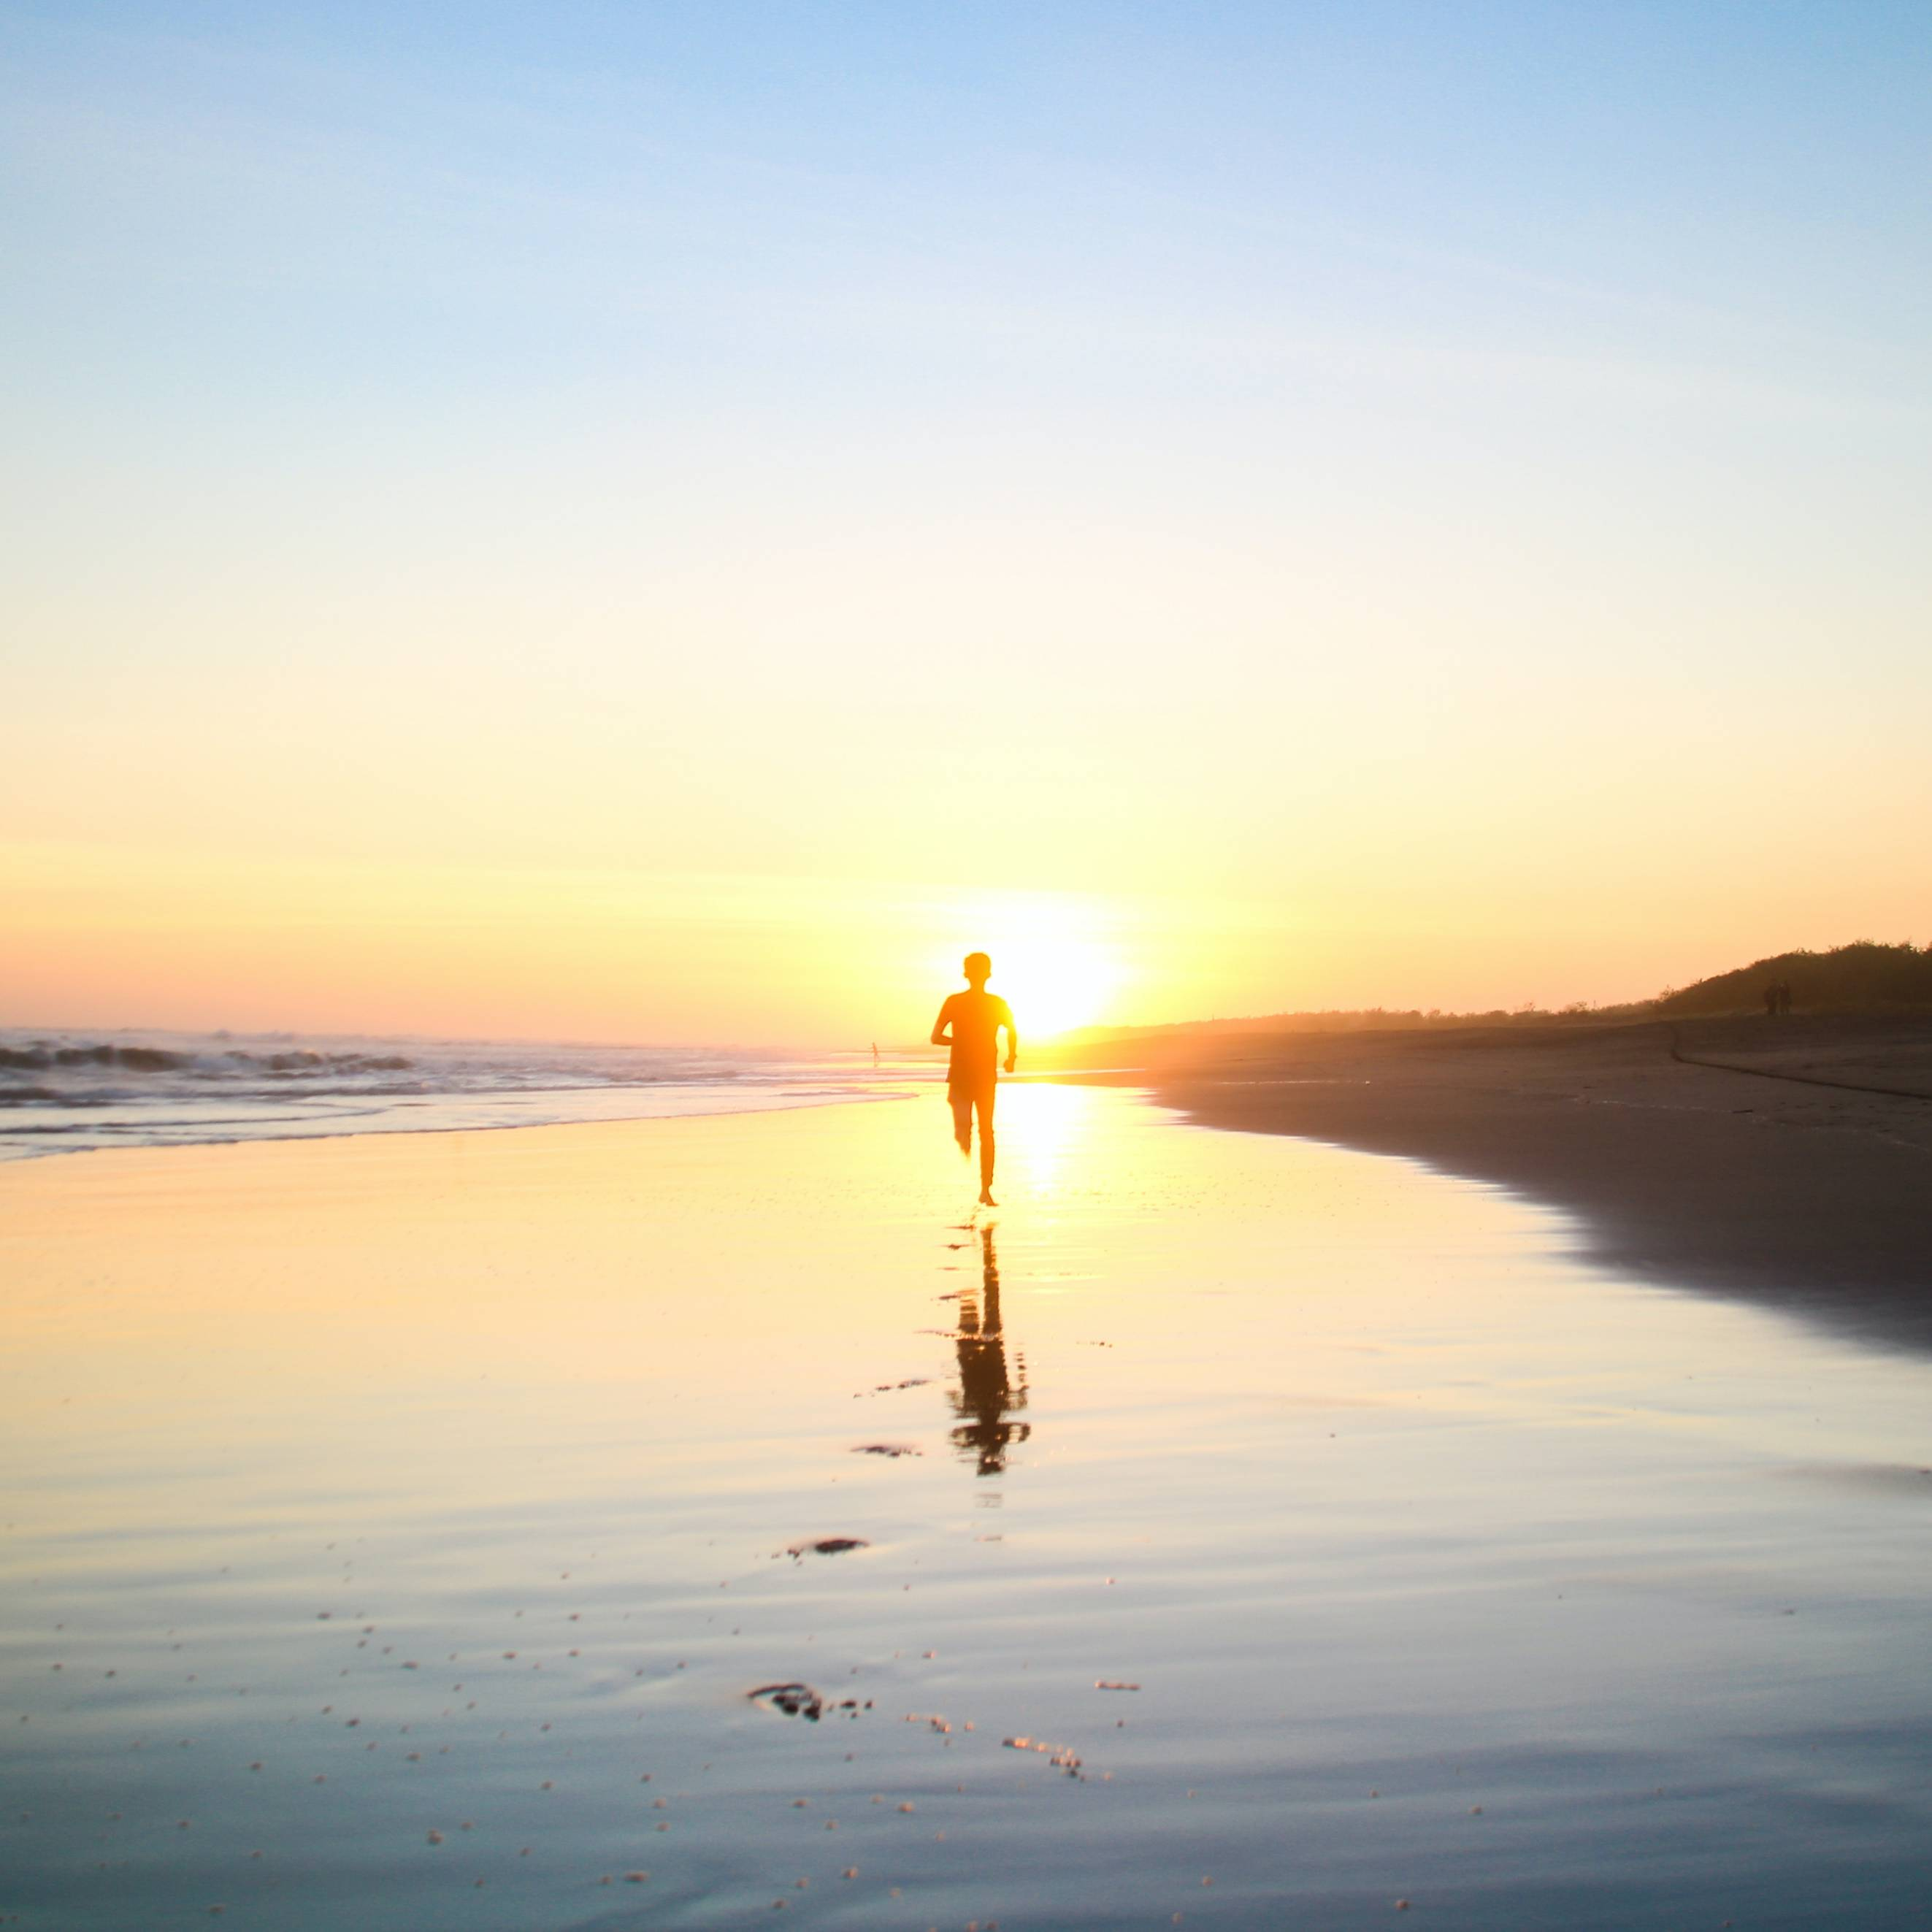 Man running as the sun rises, representing action in life